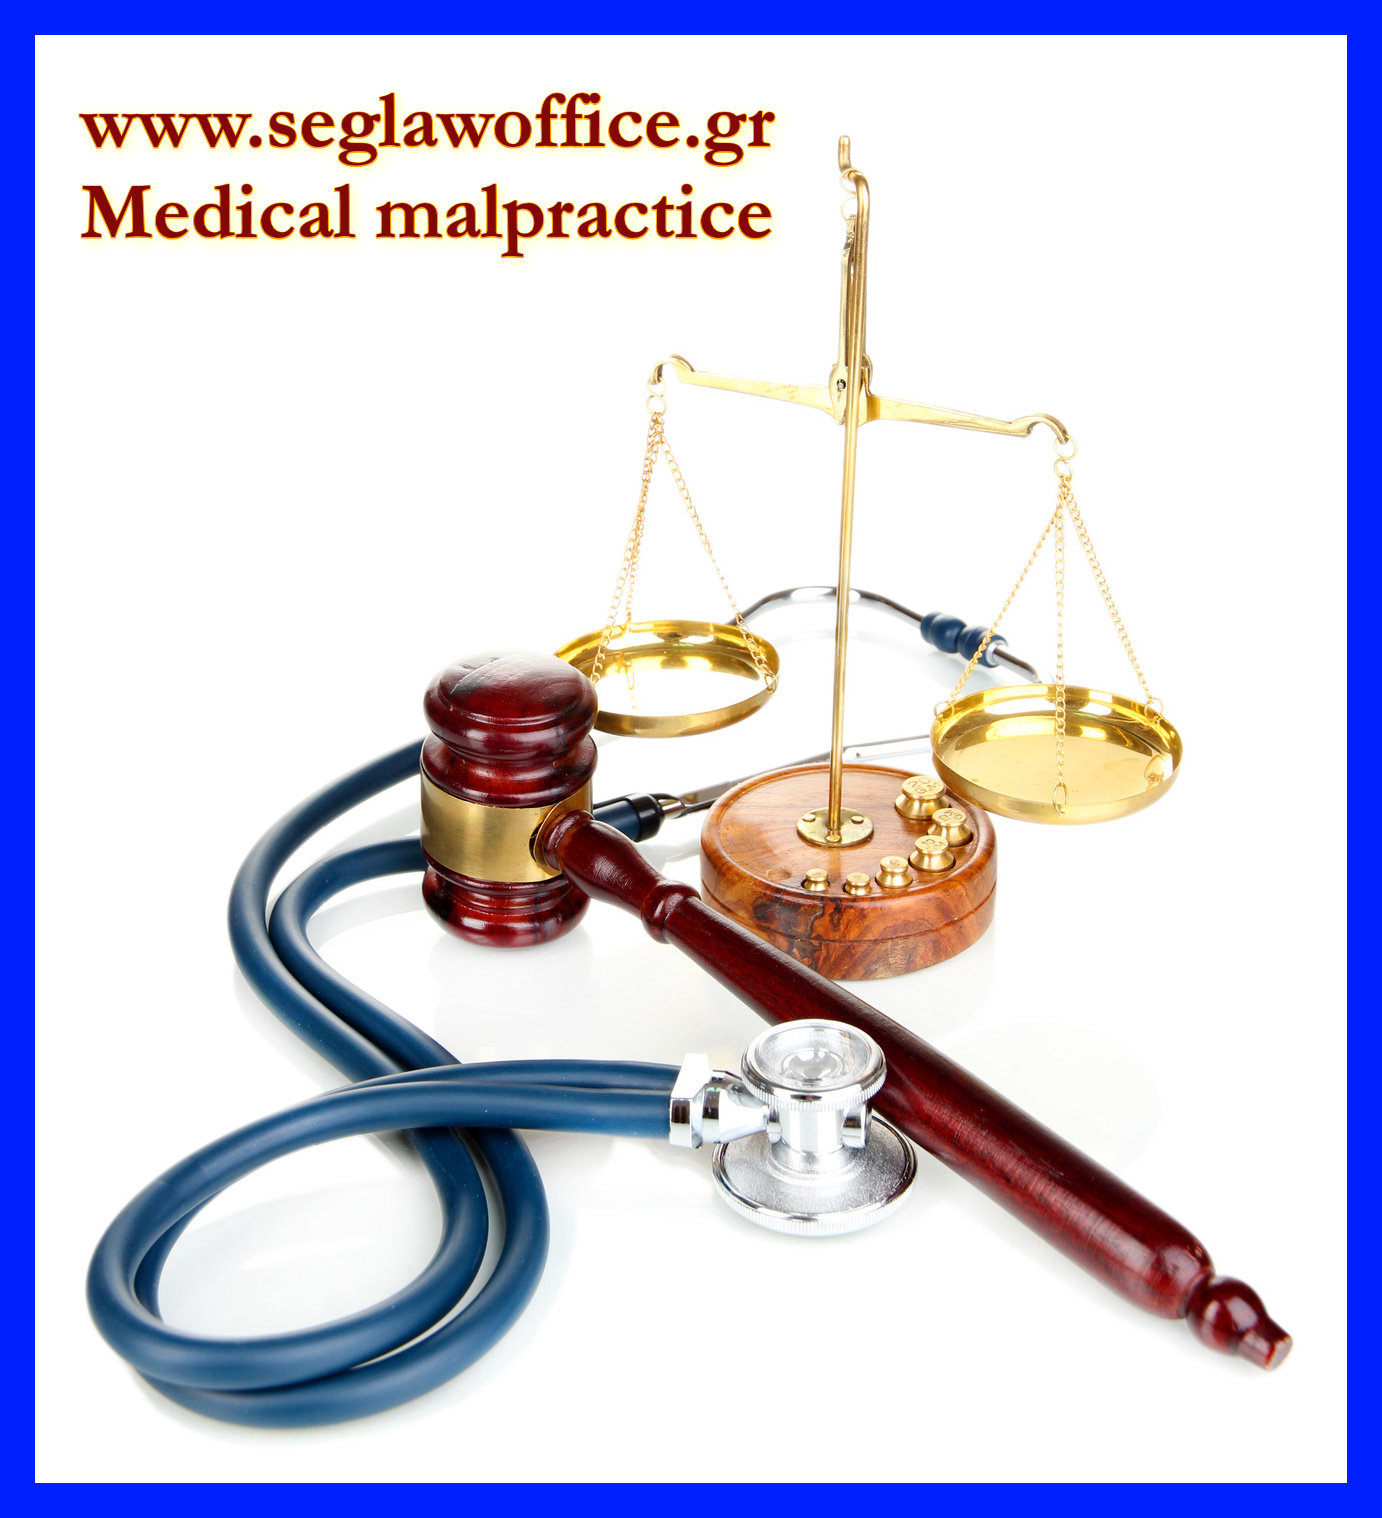 medical malpractice, medical error, medicine law, compensation, lawyer, attorney, greece, supreme court, George Sotiropoulos, www.seglawoffice.gr